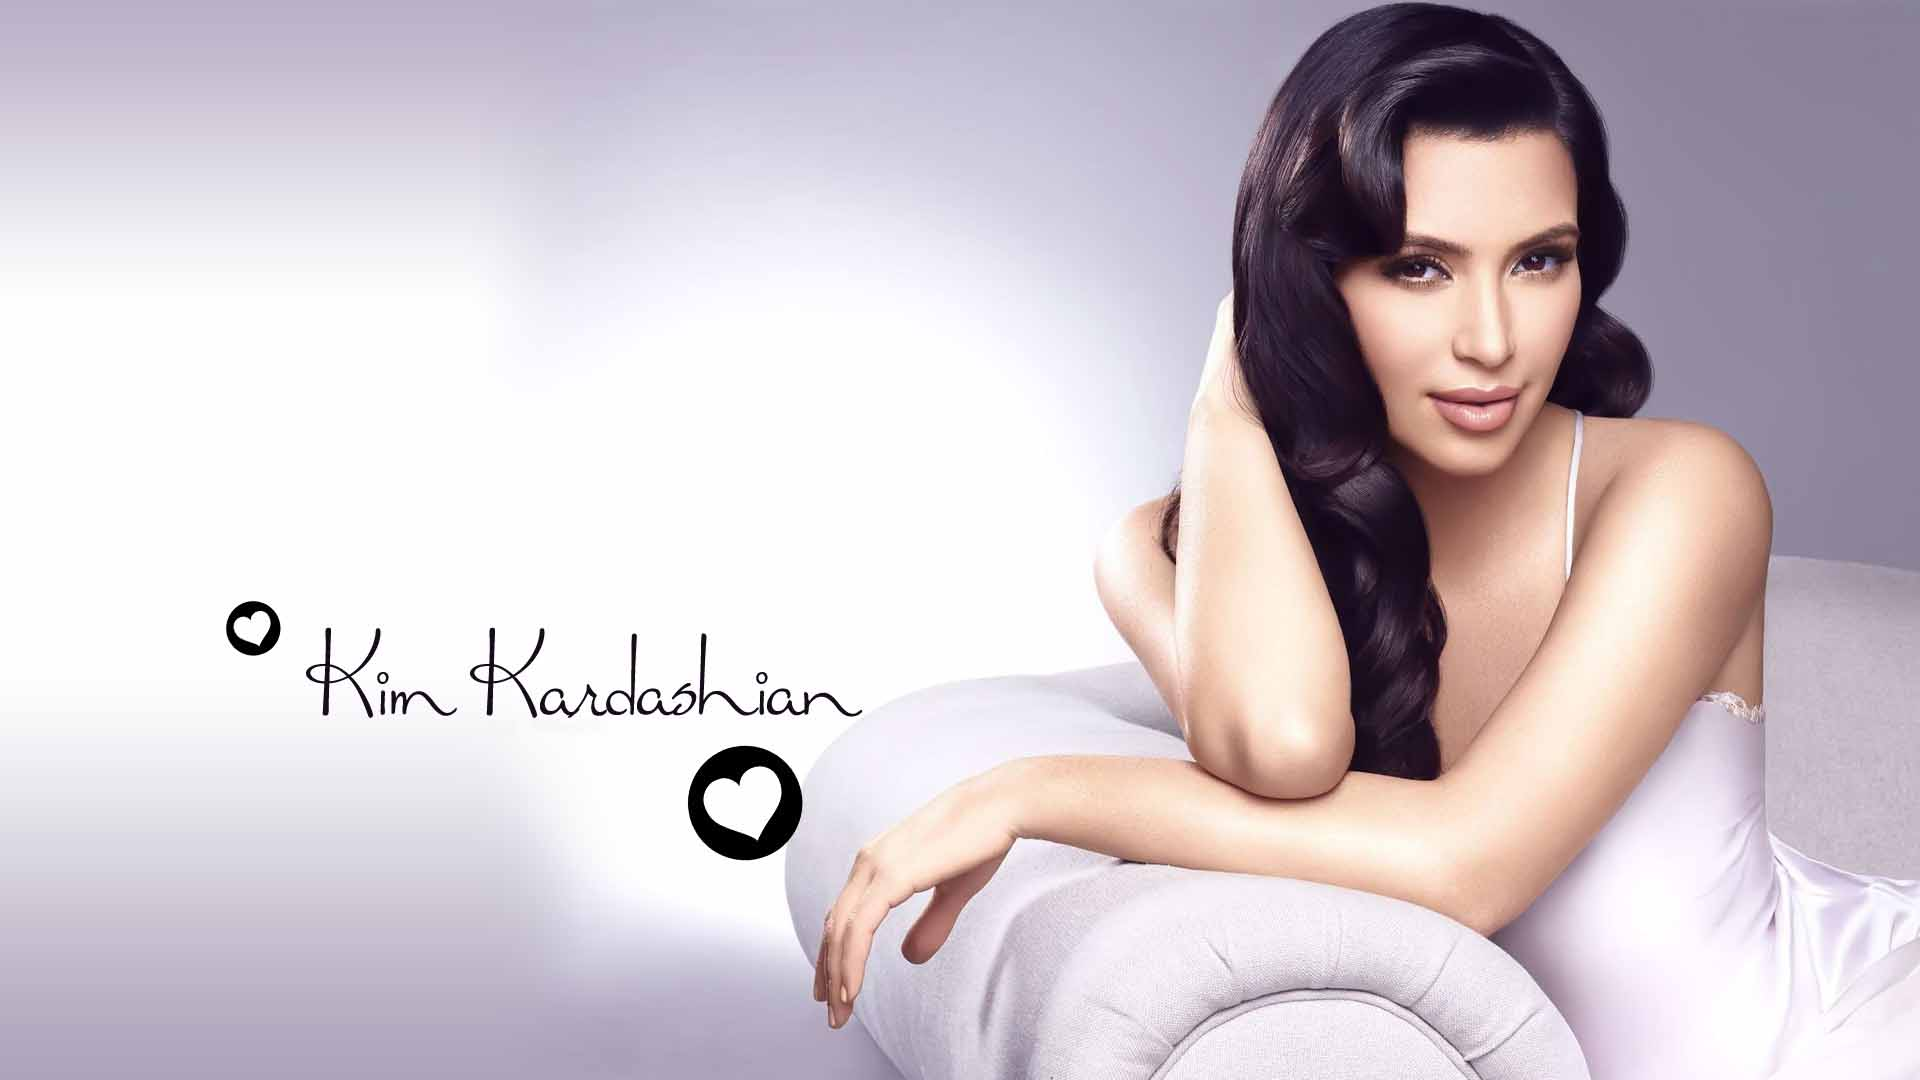 Kim Kardashian Celebrity Wallpaper HD   Celebrities   Amazing Photo 1920x1080